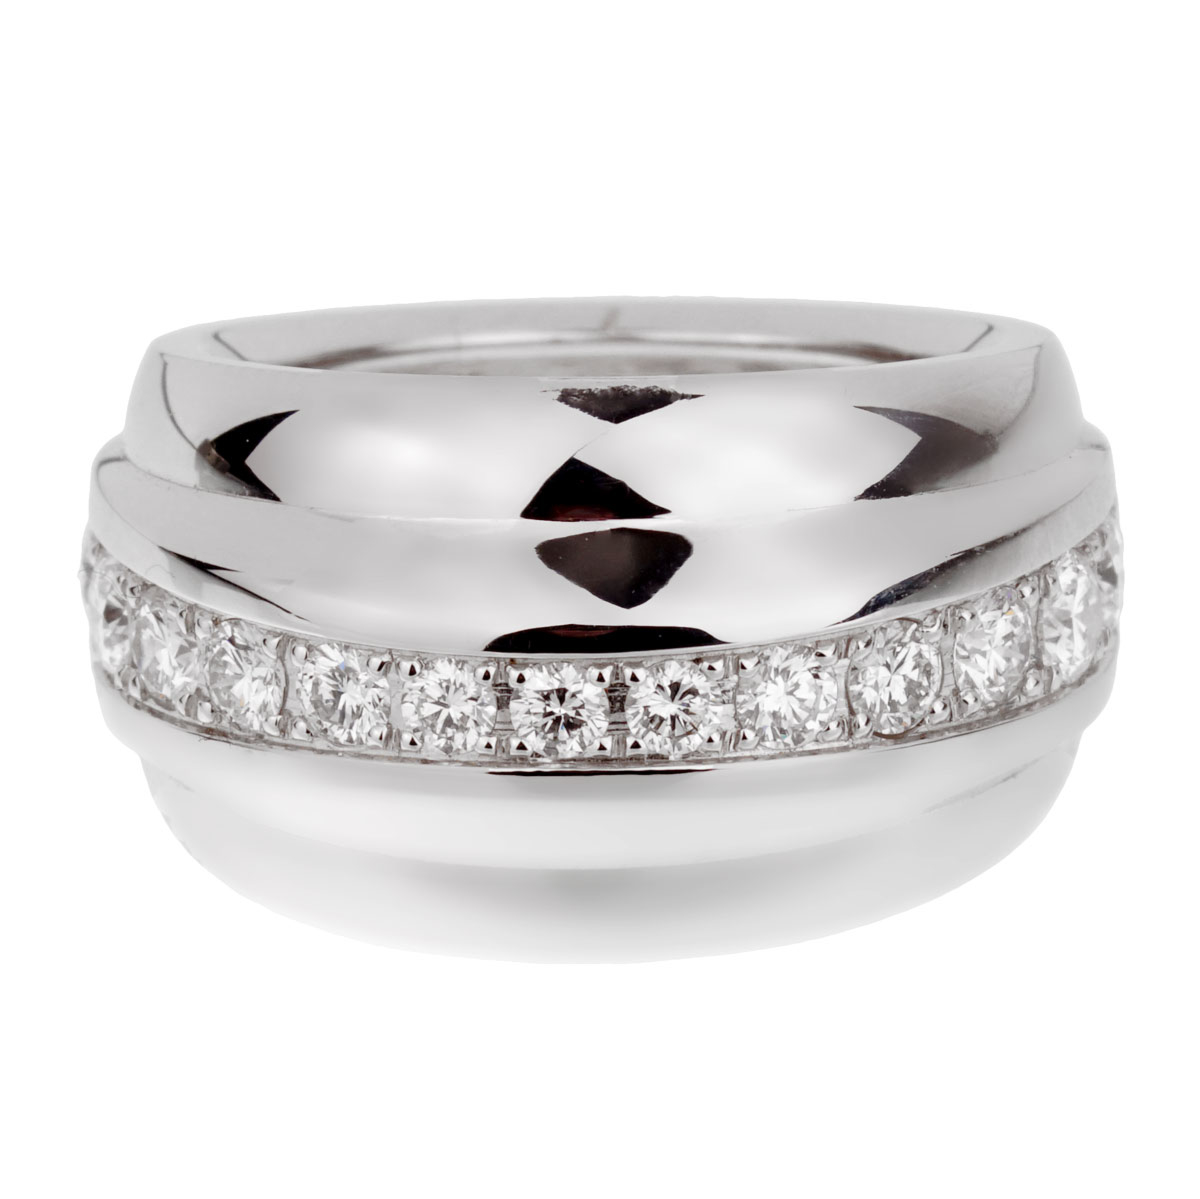 Chopard La Strada Diamond White Gold Ring - Chopard Jewelry